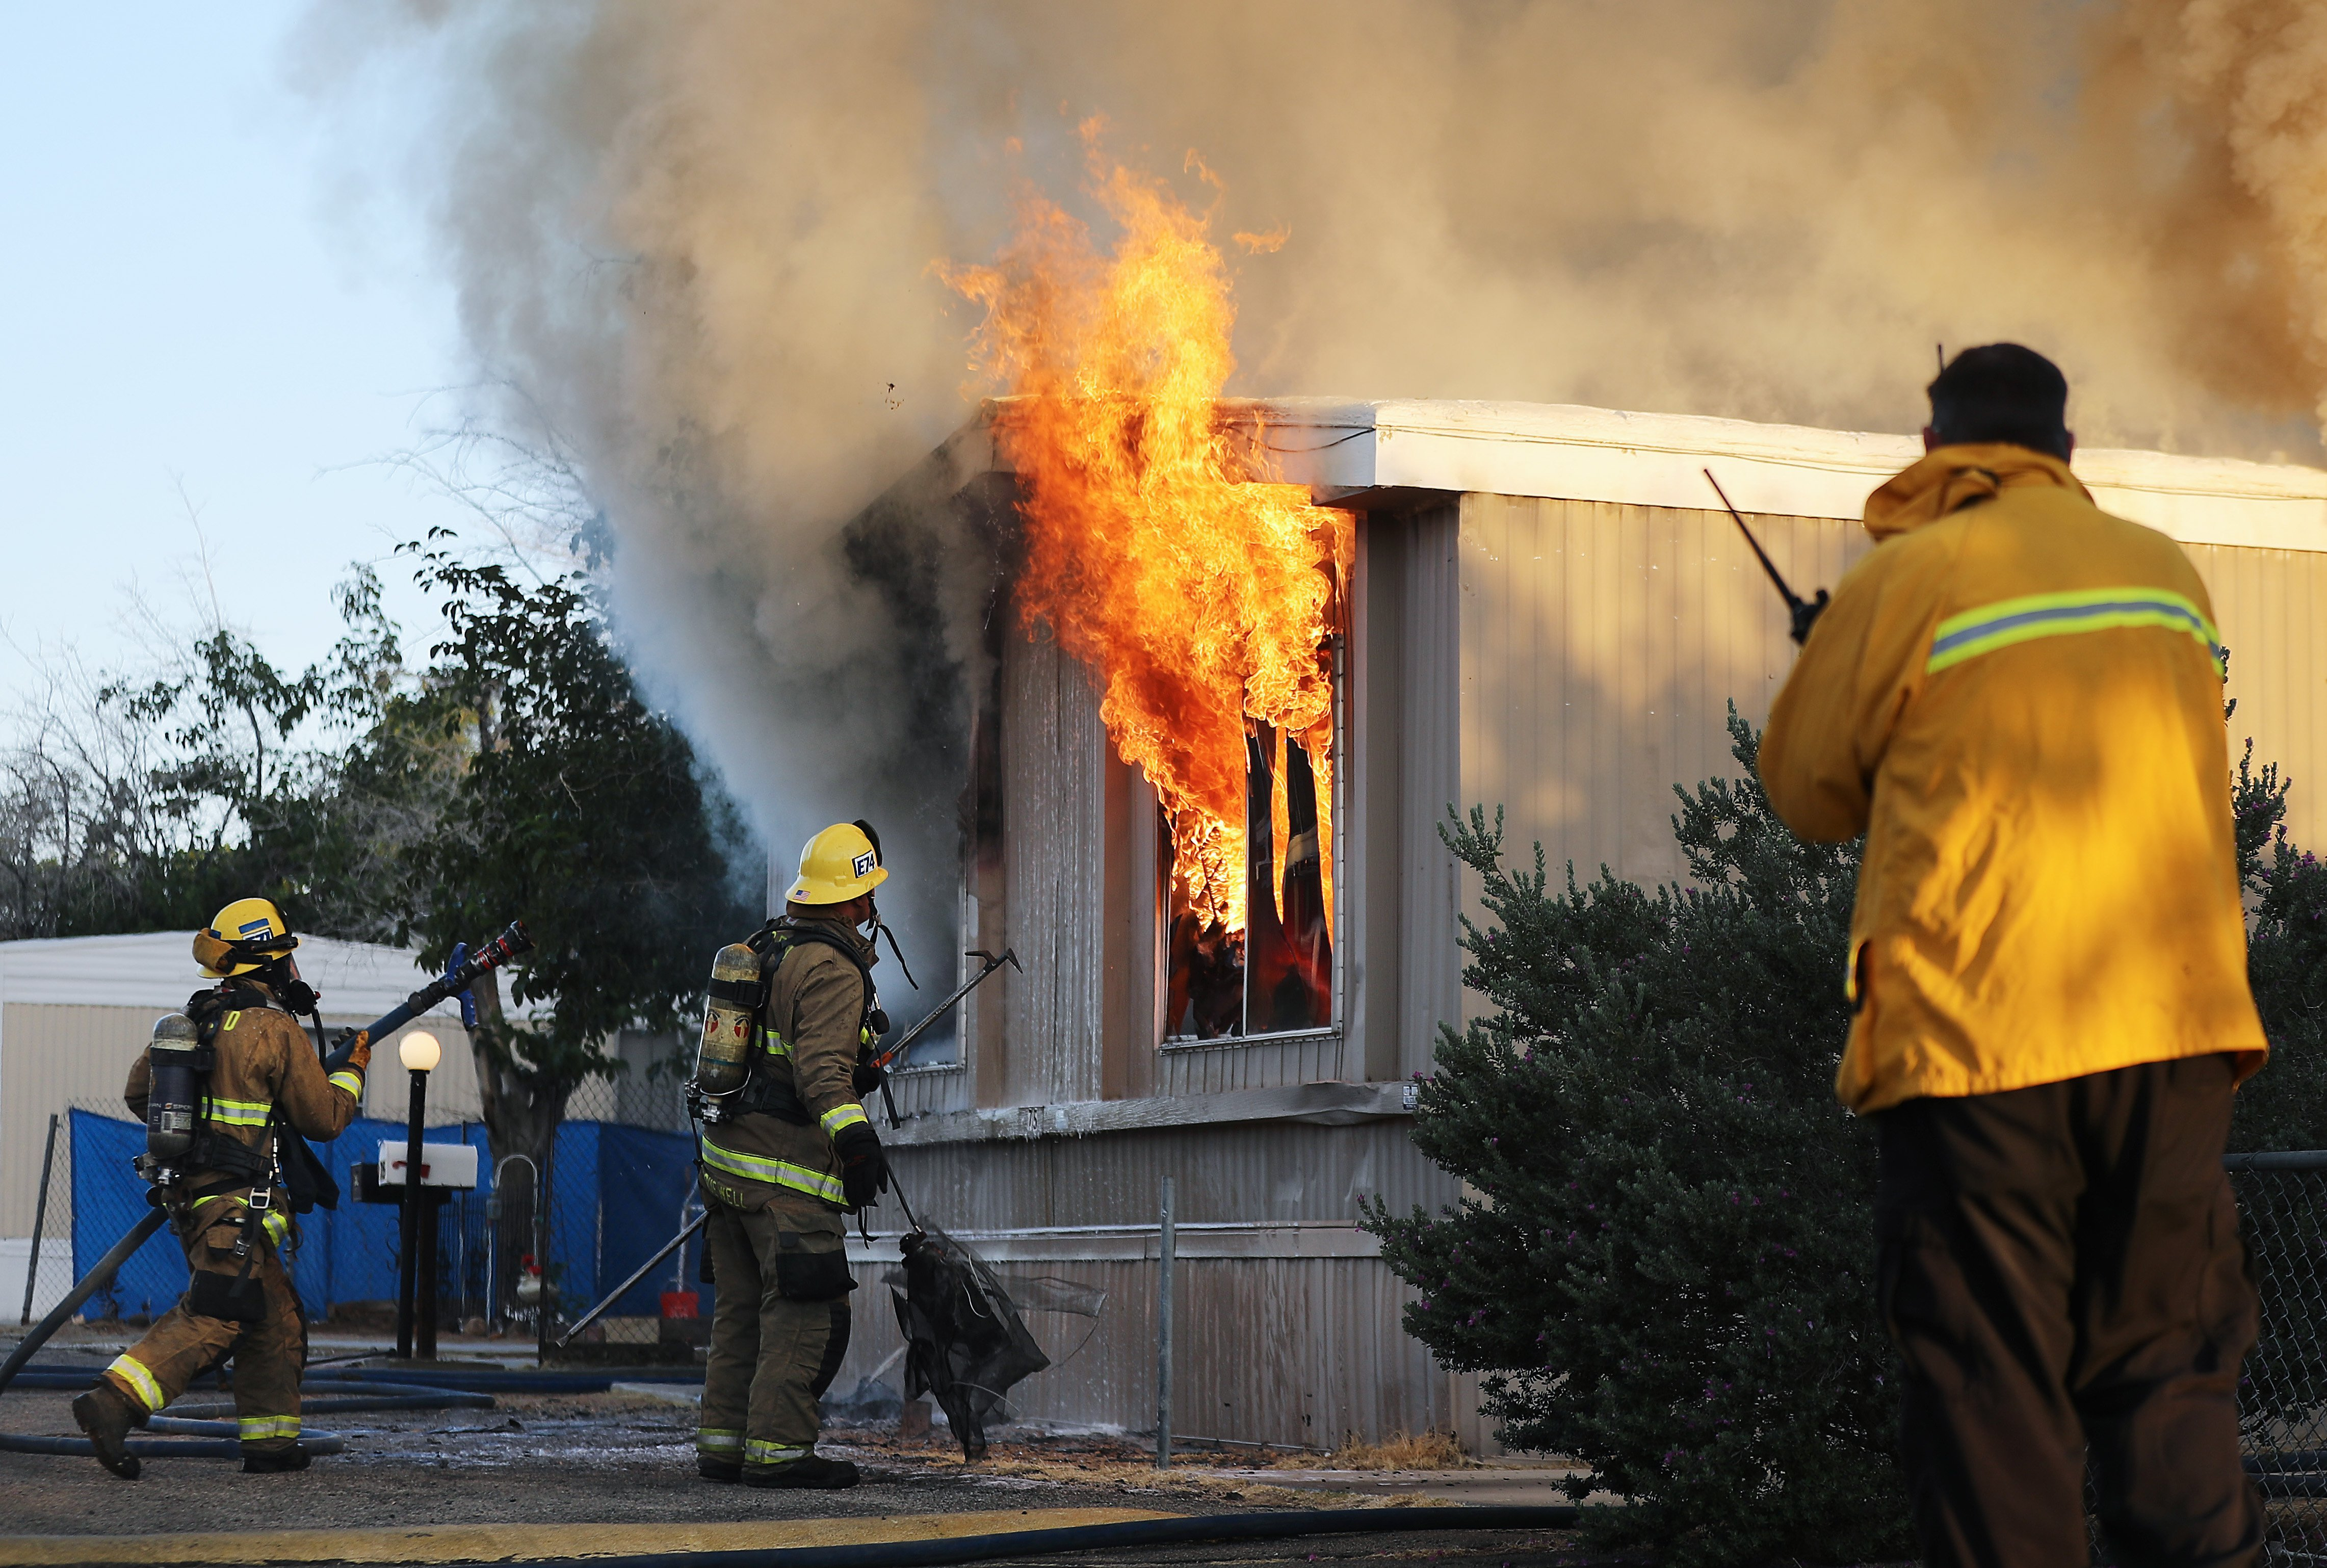 Firefighters trying to put out a house fire the a 7.1 magnitude earthquake in Ridgecrest, California   Photo: Getty Images